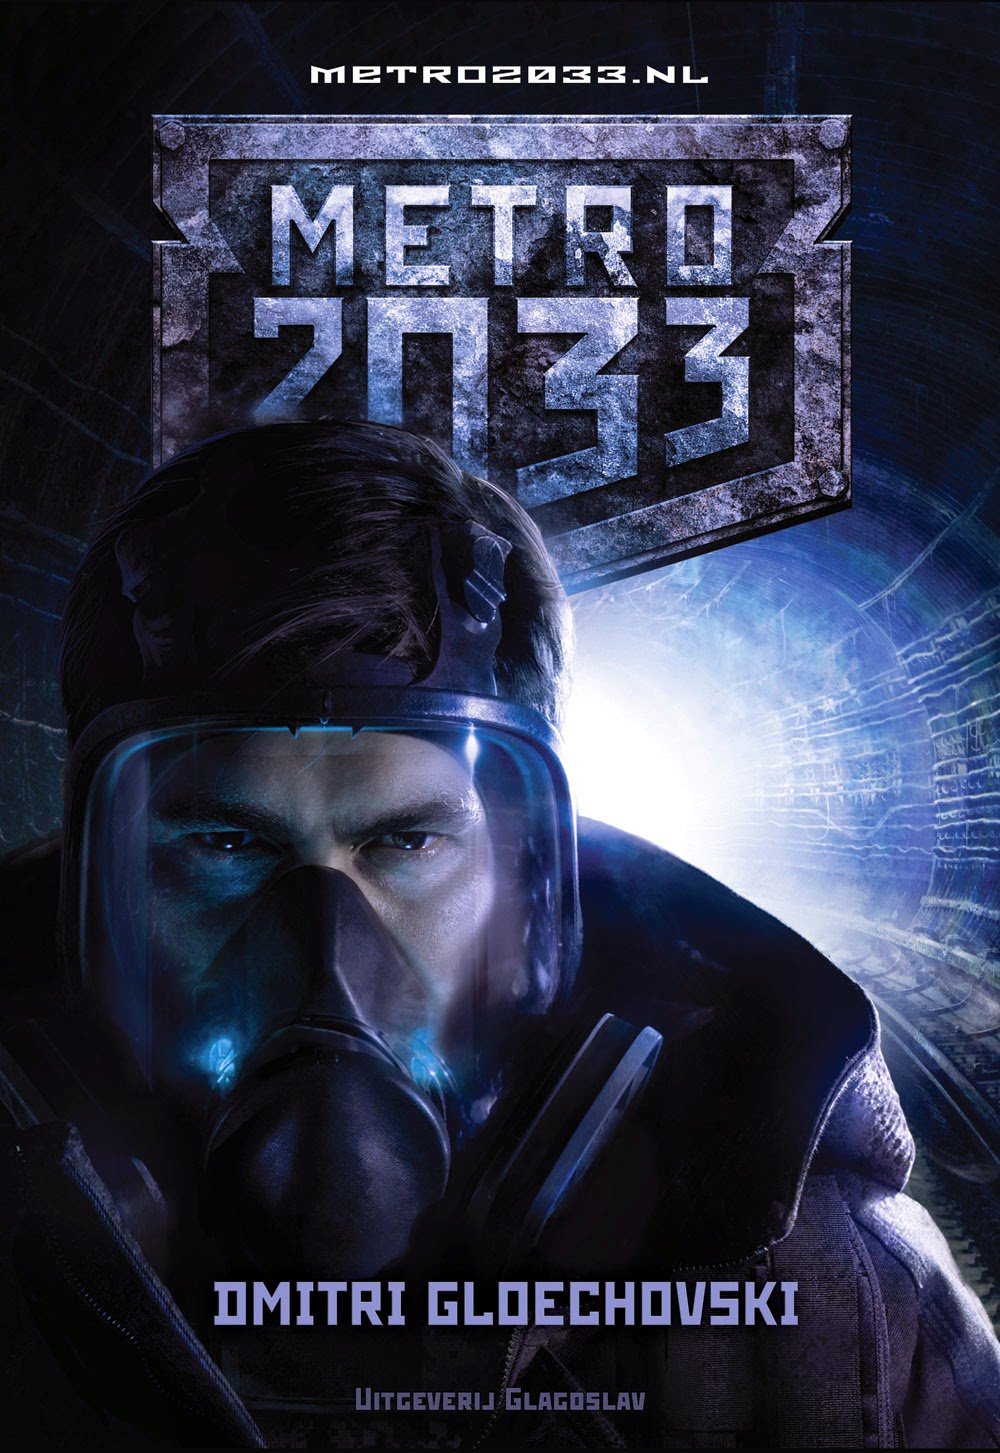 metro 2033 by dmitry glukhovsky essay Since its first release in 2005, dmitry glukhovsky's best-selling novel, metro 2033, has captivated audiences all over the world it has been translated to.